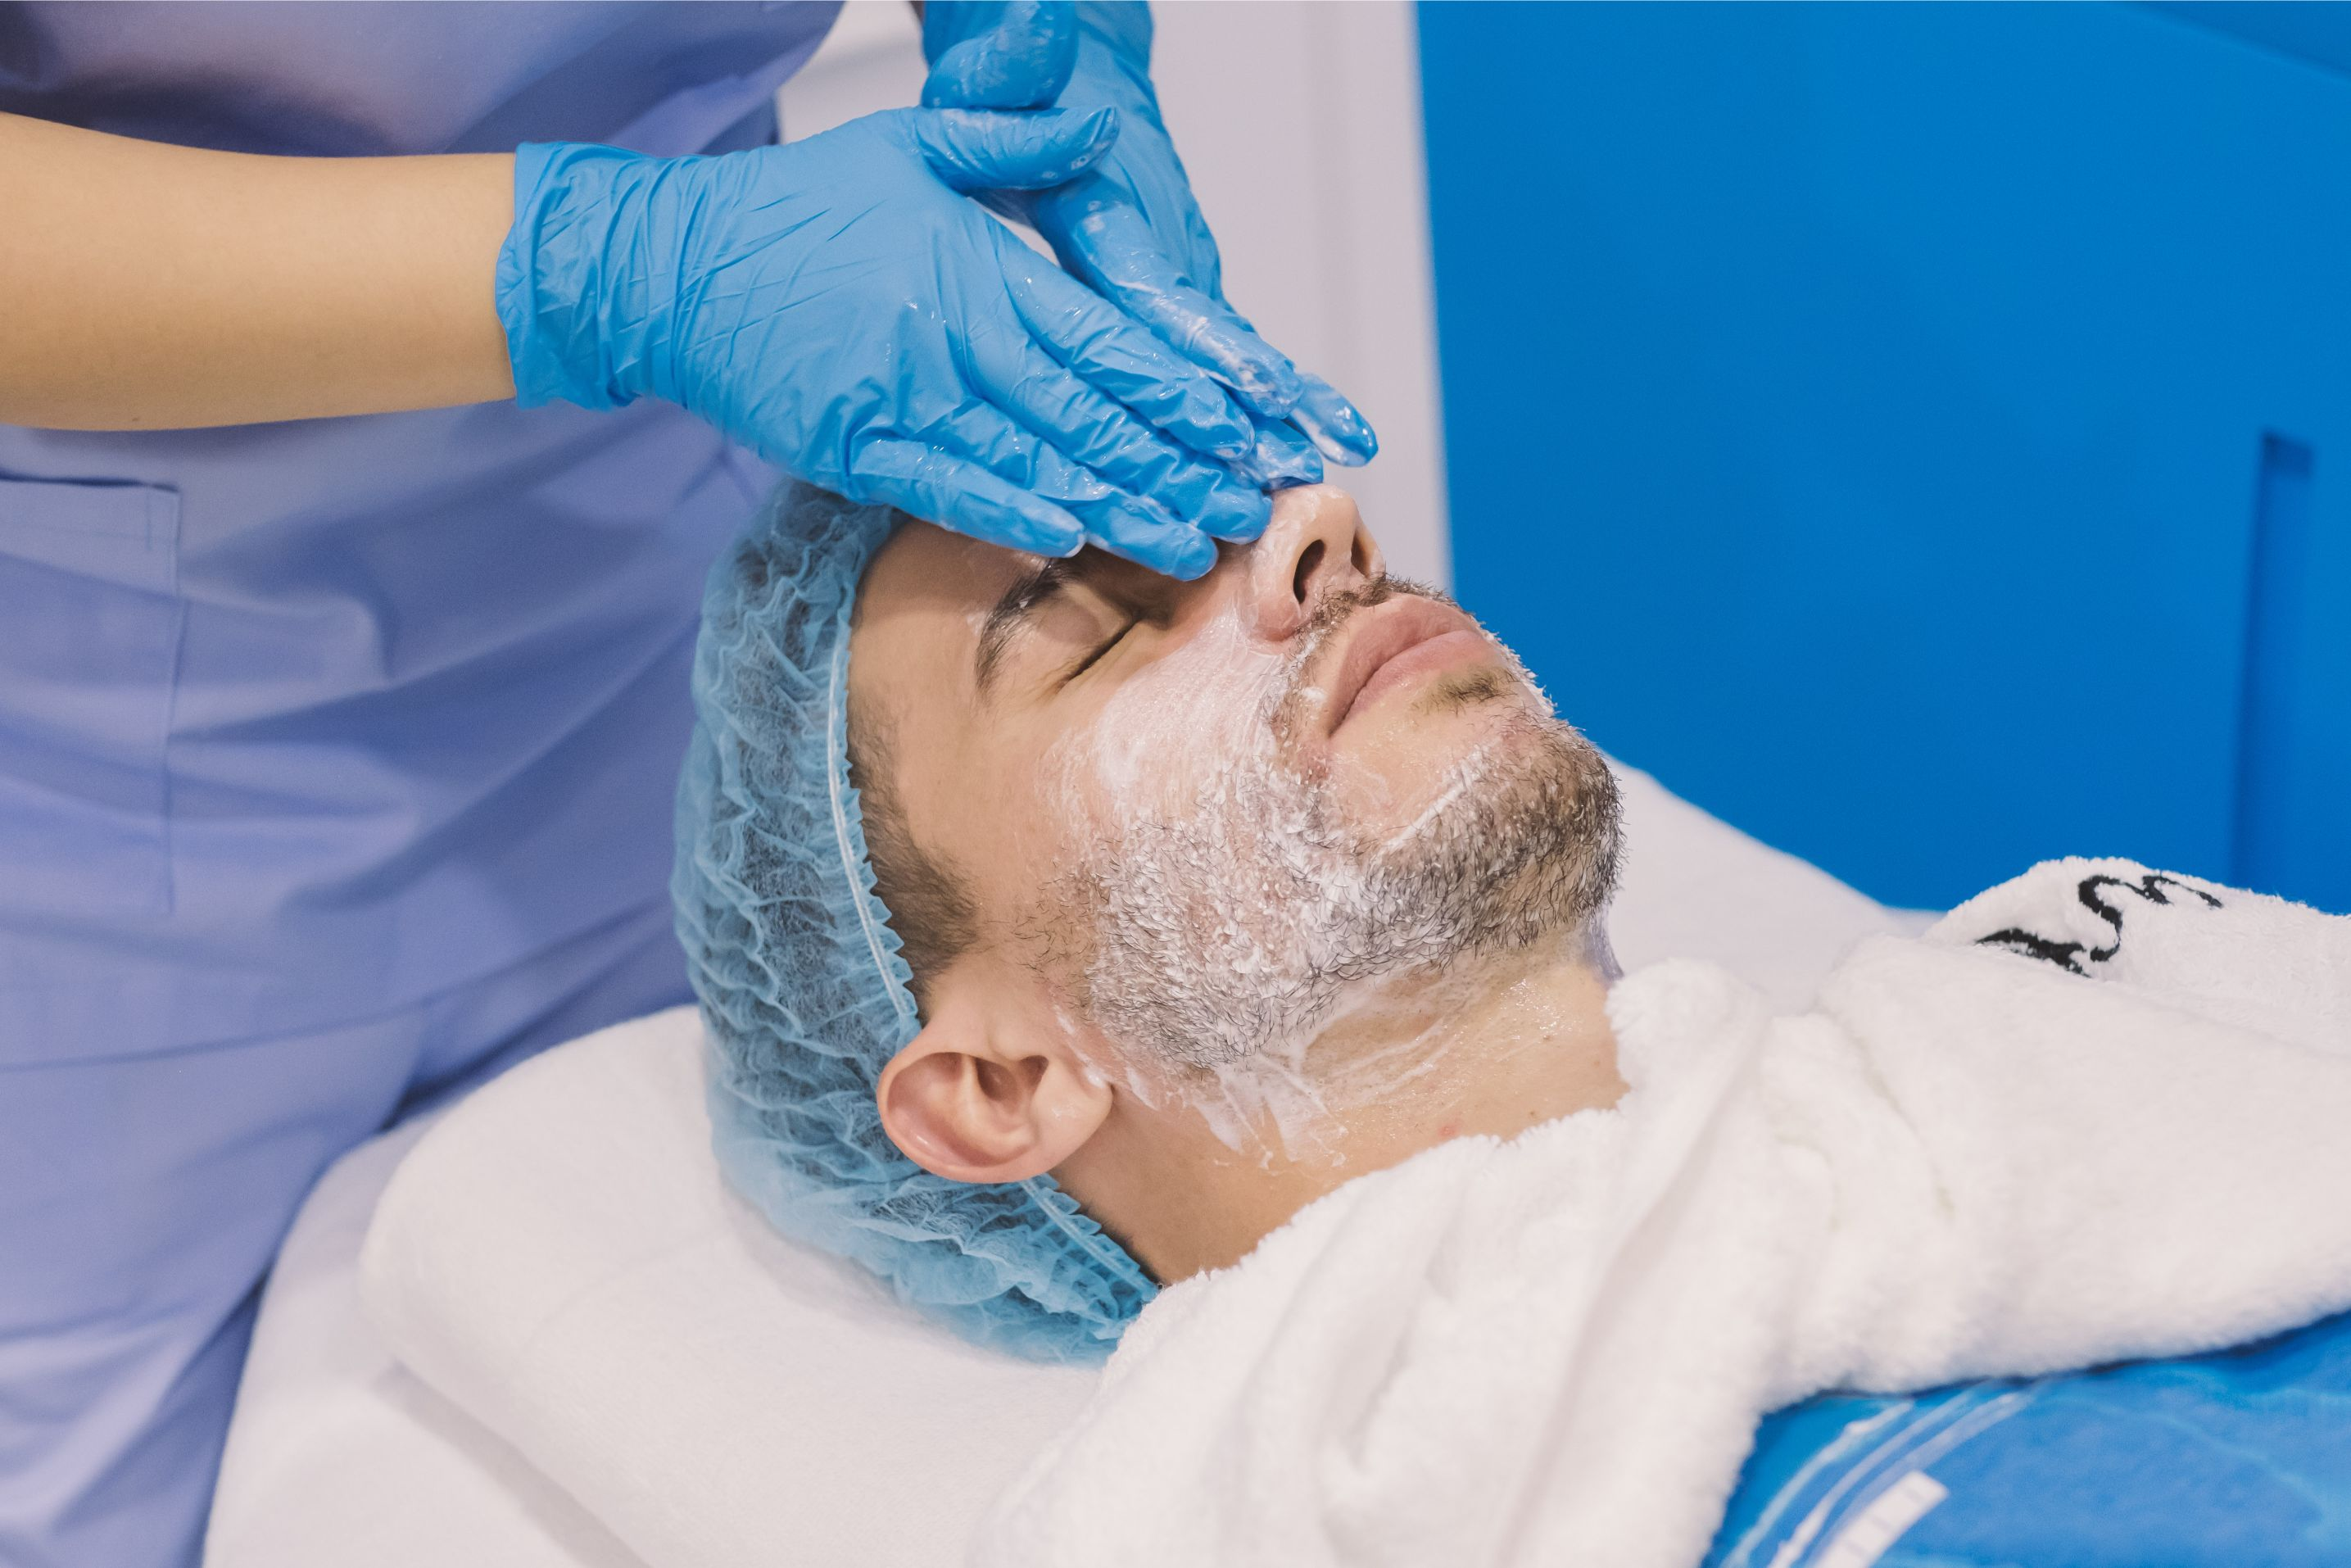 Professional Clinical Treatment